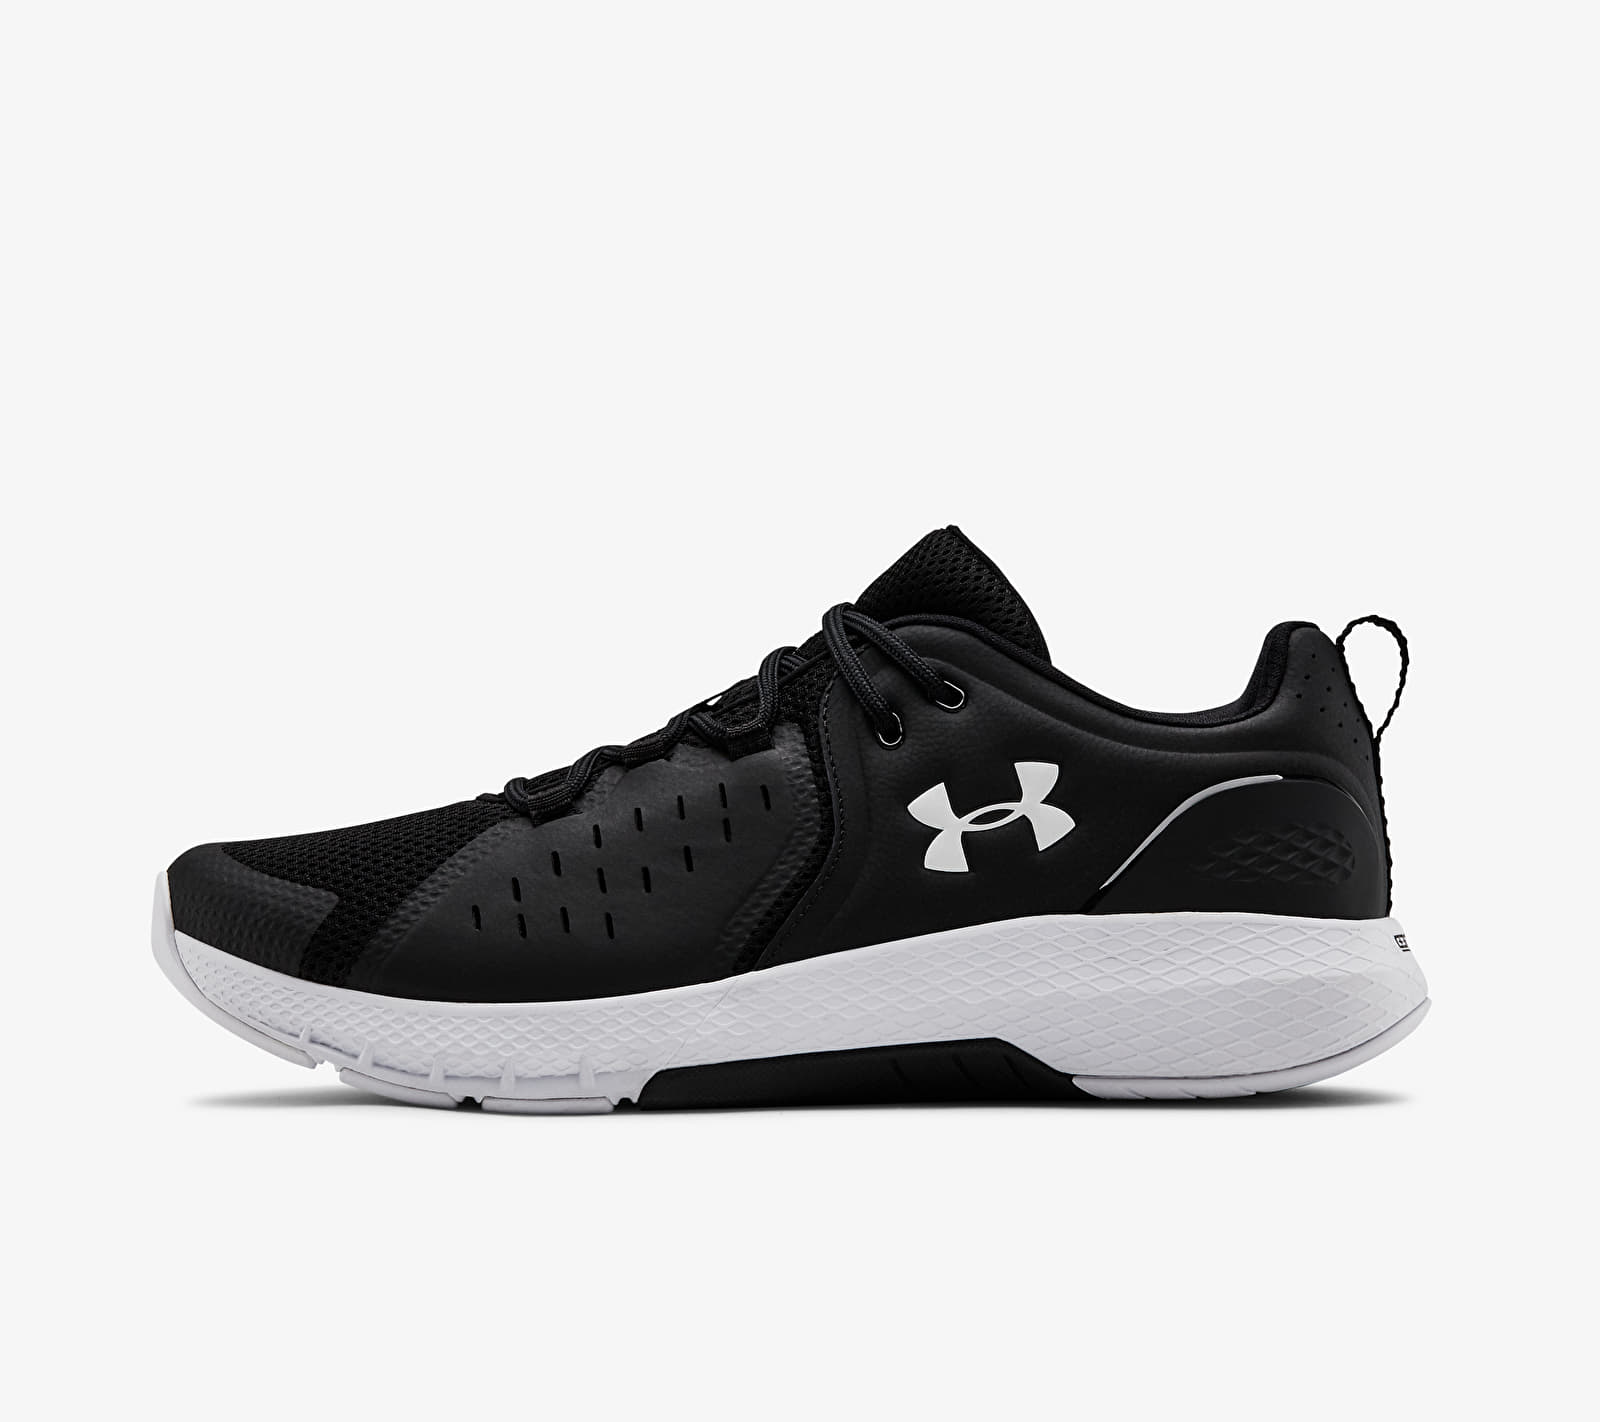 Under Armour Charged Commit TR 2 Black/ White/ White EUR 42.5